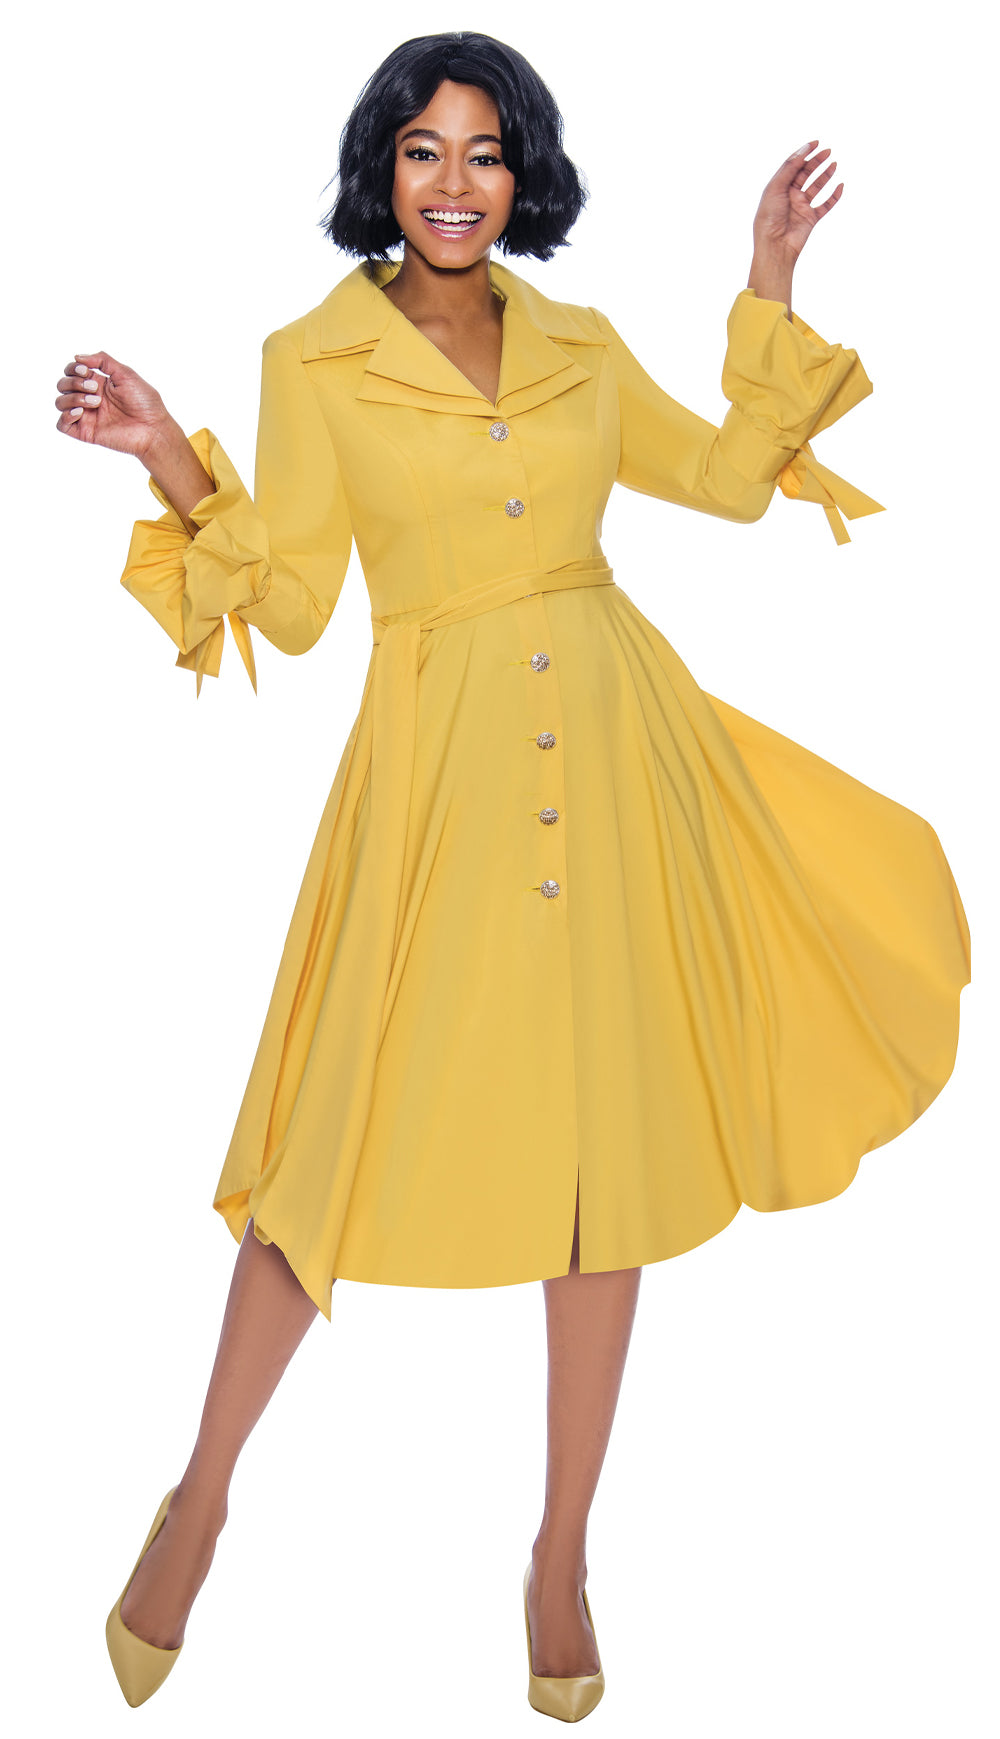 Terramina Dress 7850-Yellow - Church Suits For Less